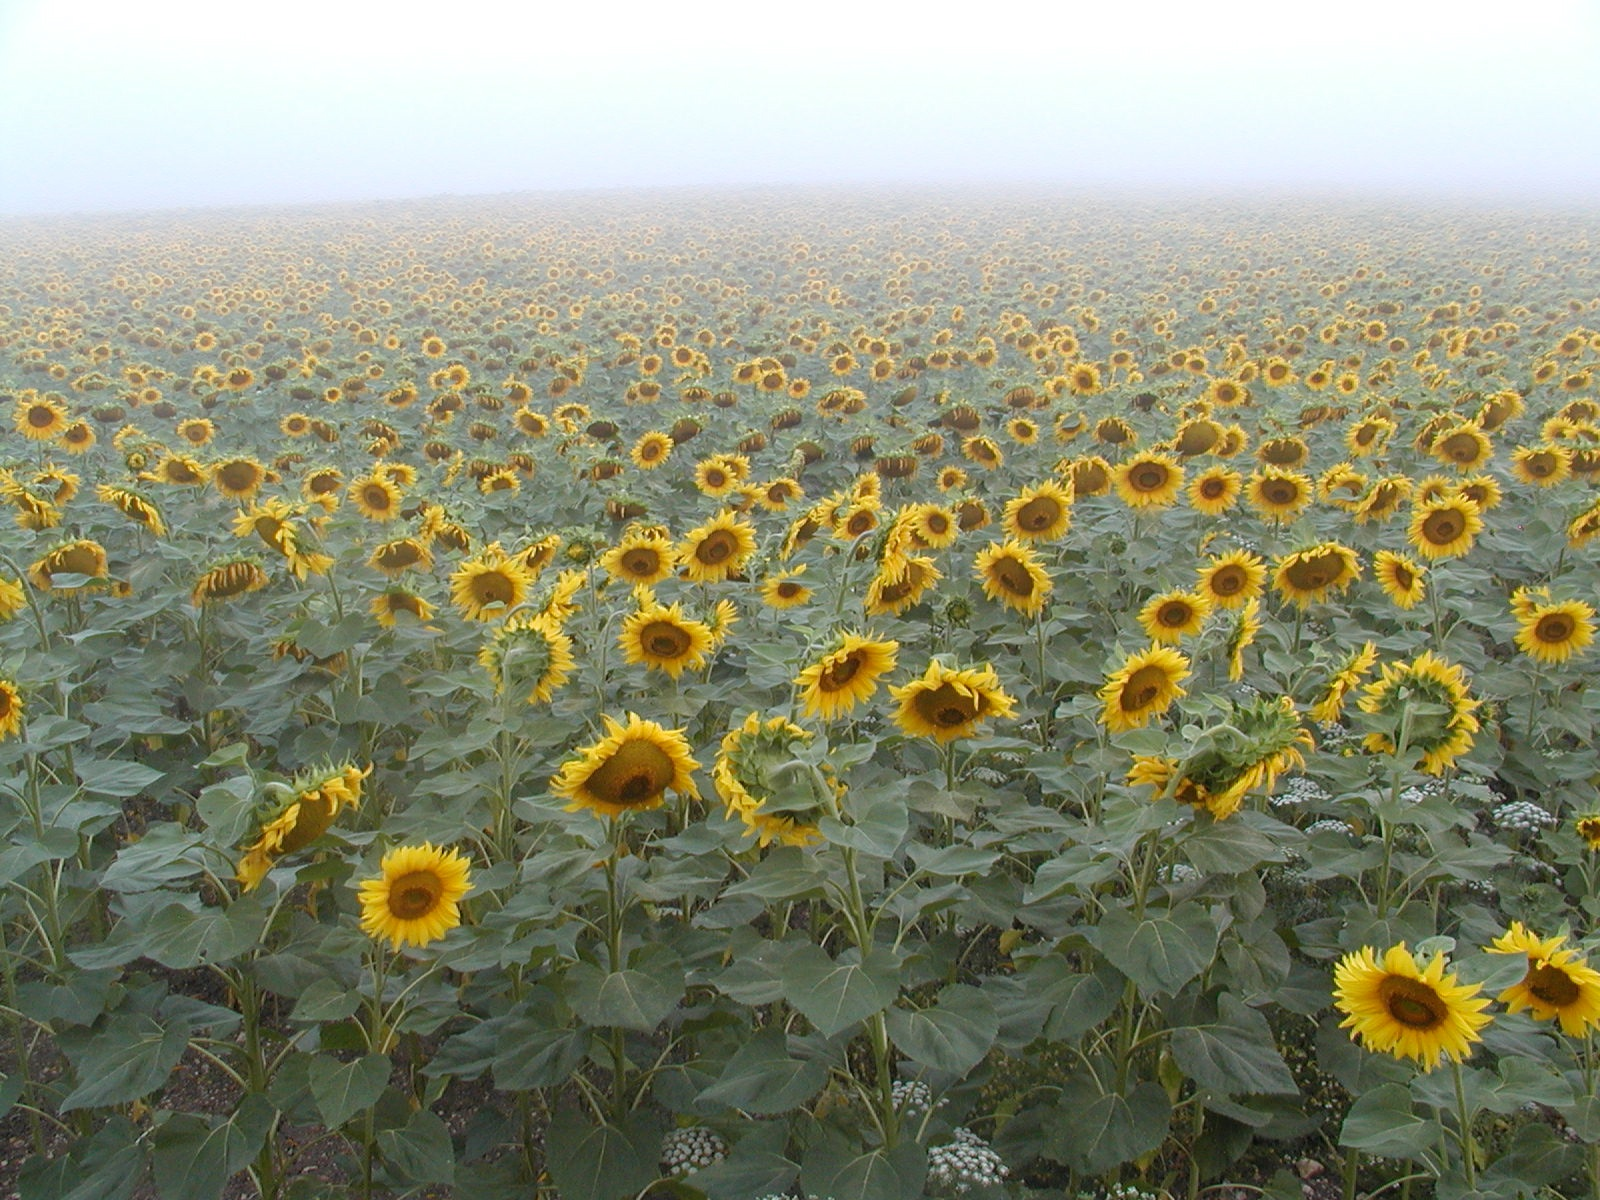 field of sunflowers author lucke charlie misty m